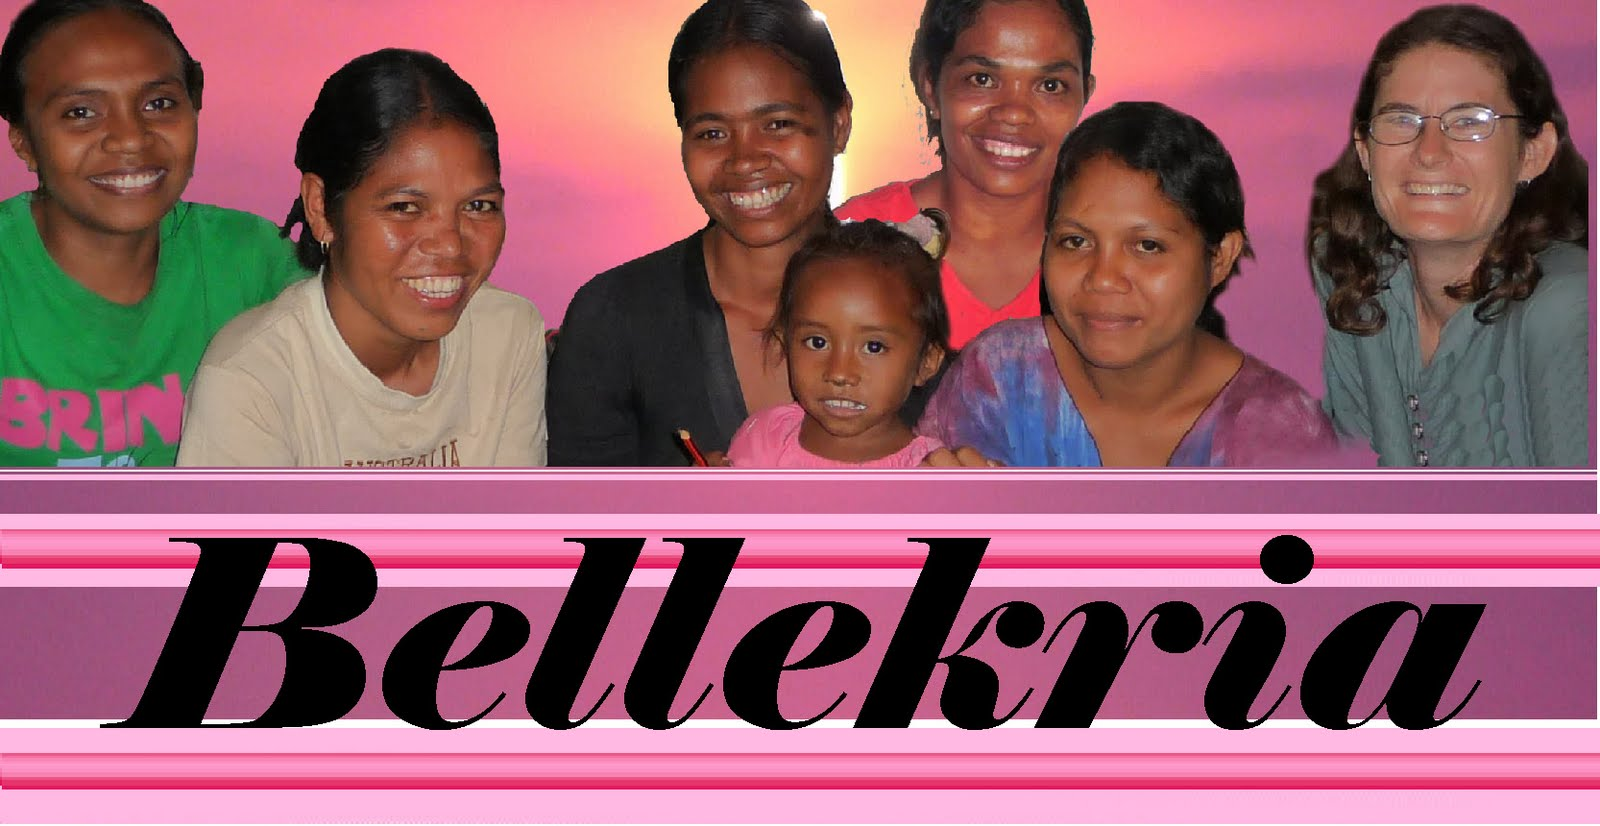 Belekria Old Website